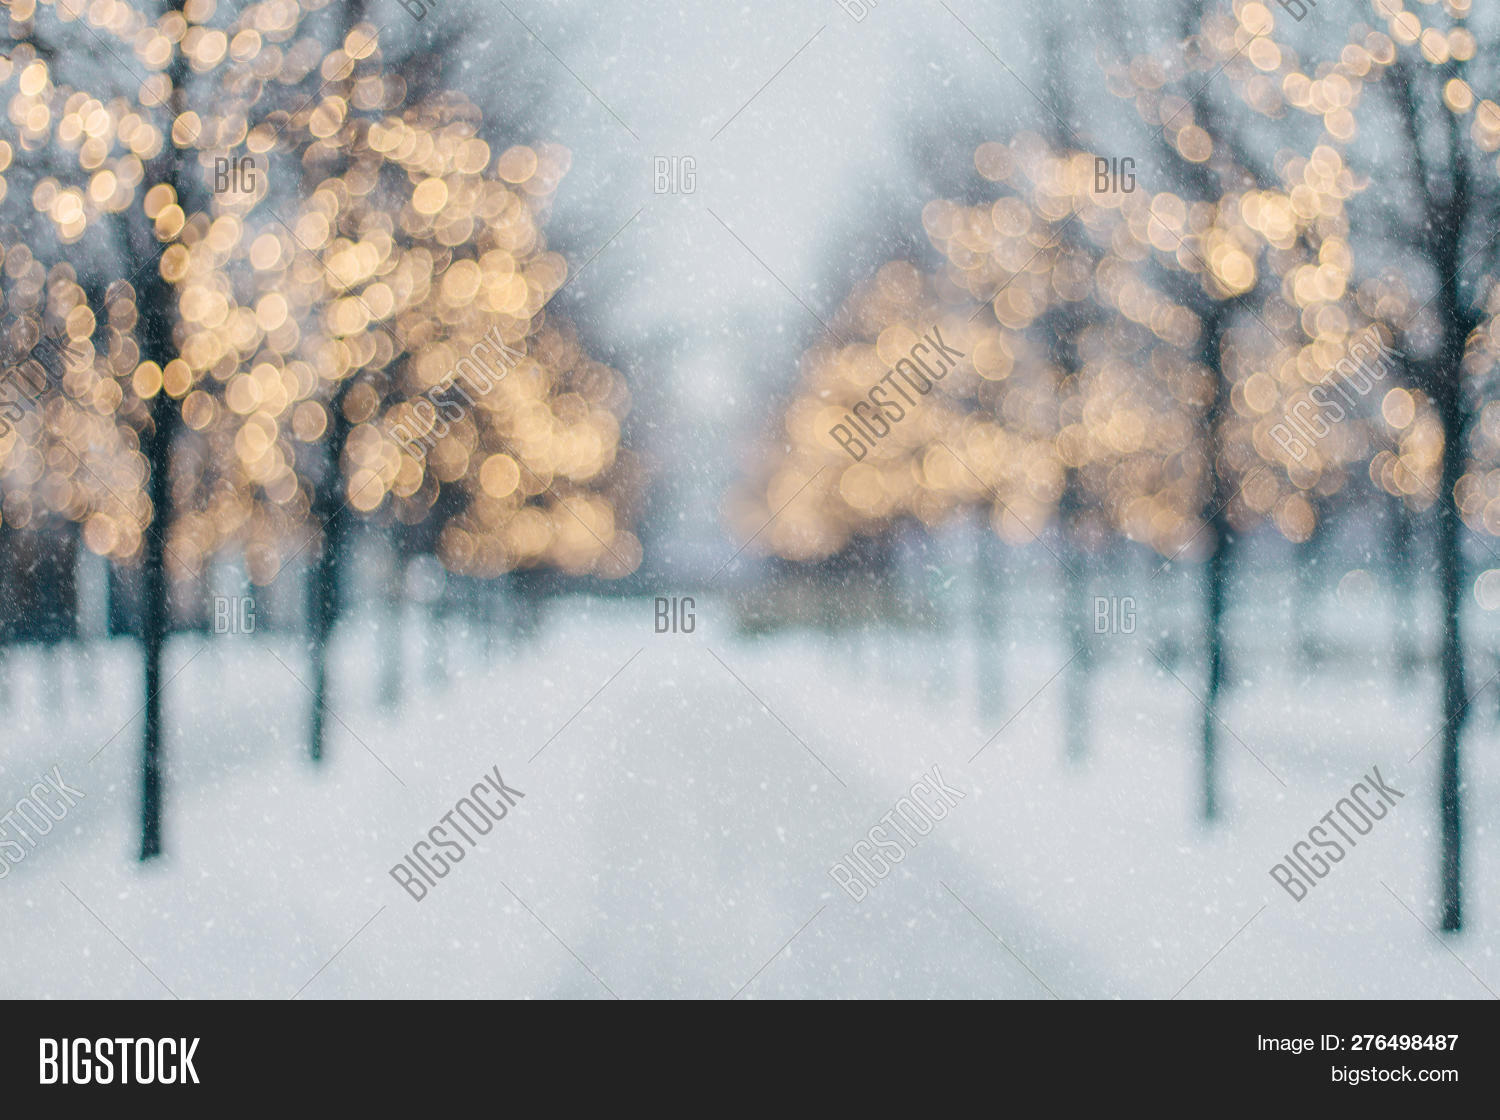 Christmas Lights That Look Like Water Falling.Beautiful Blurred Image Photo Free Trial Bigstock